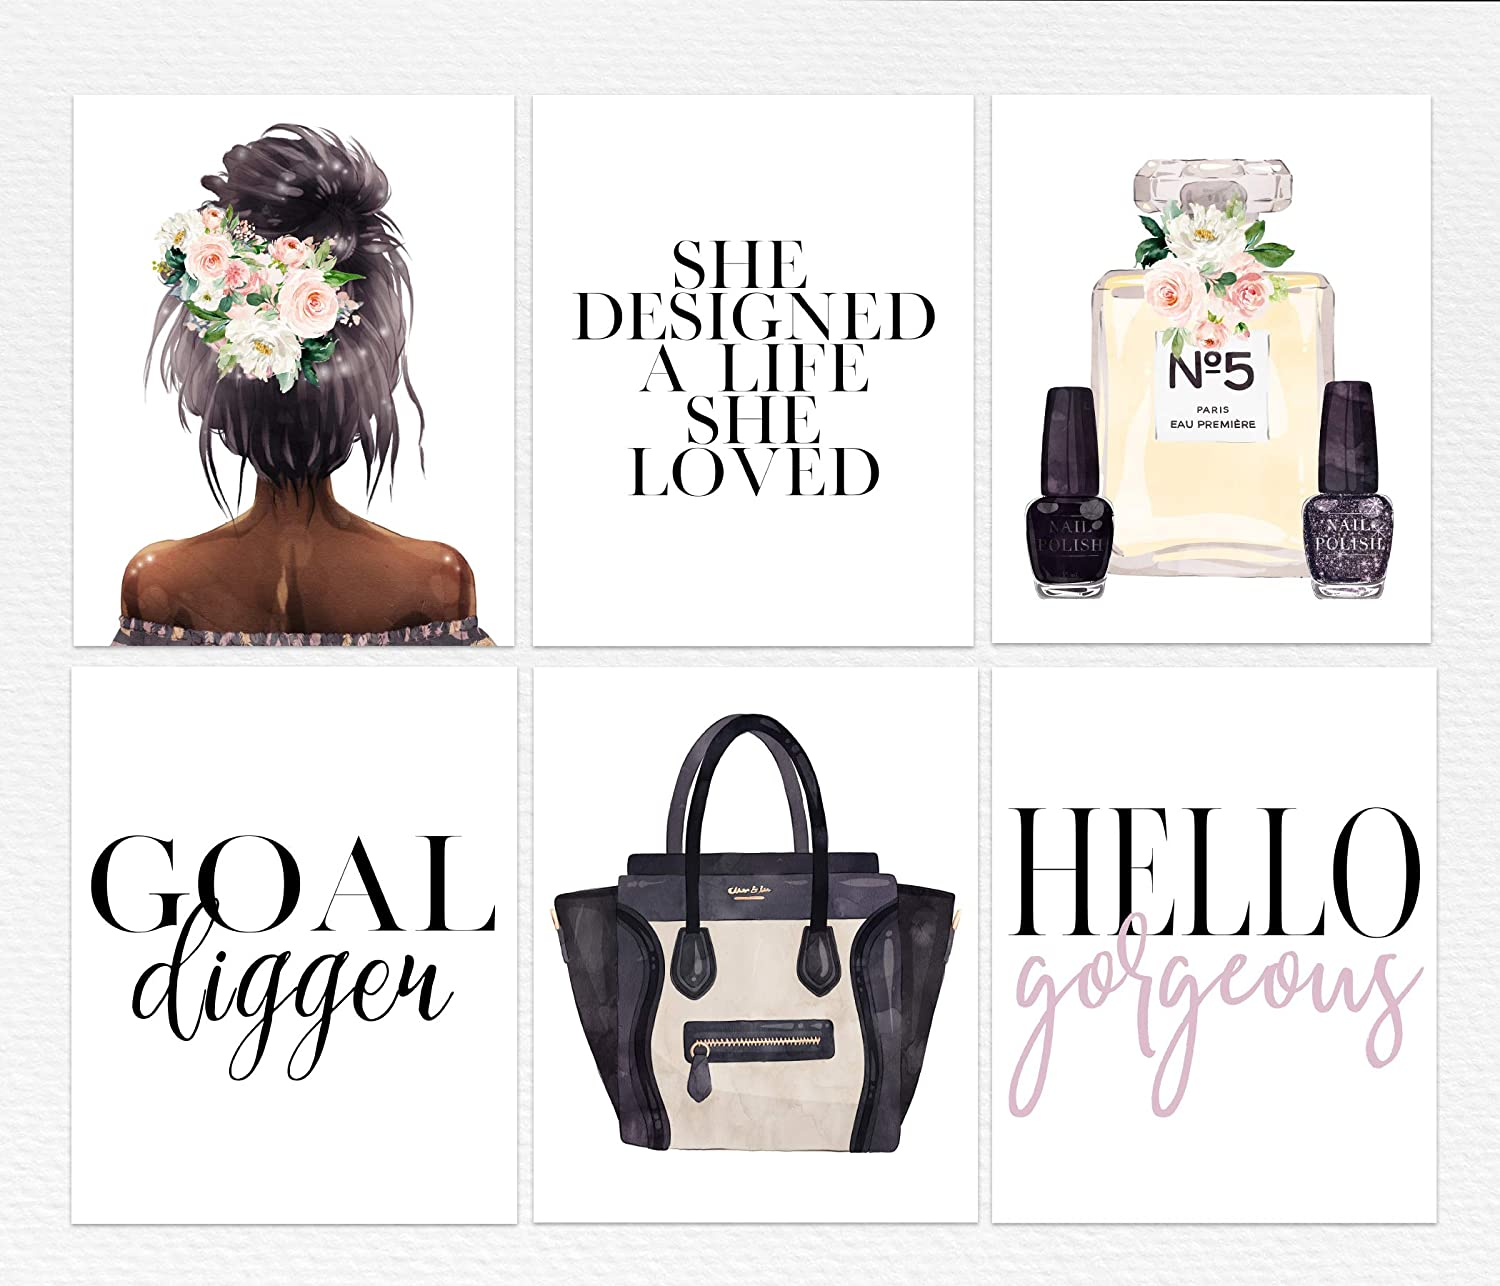 She Designed a Life Loved Inspirational Home Quote Gallery Wall Art Print Black